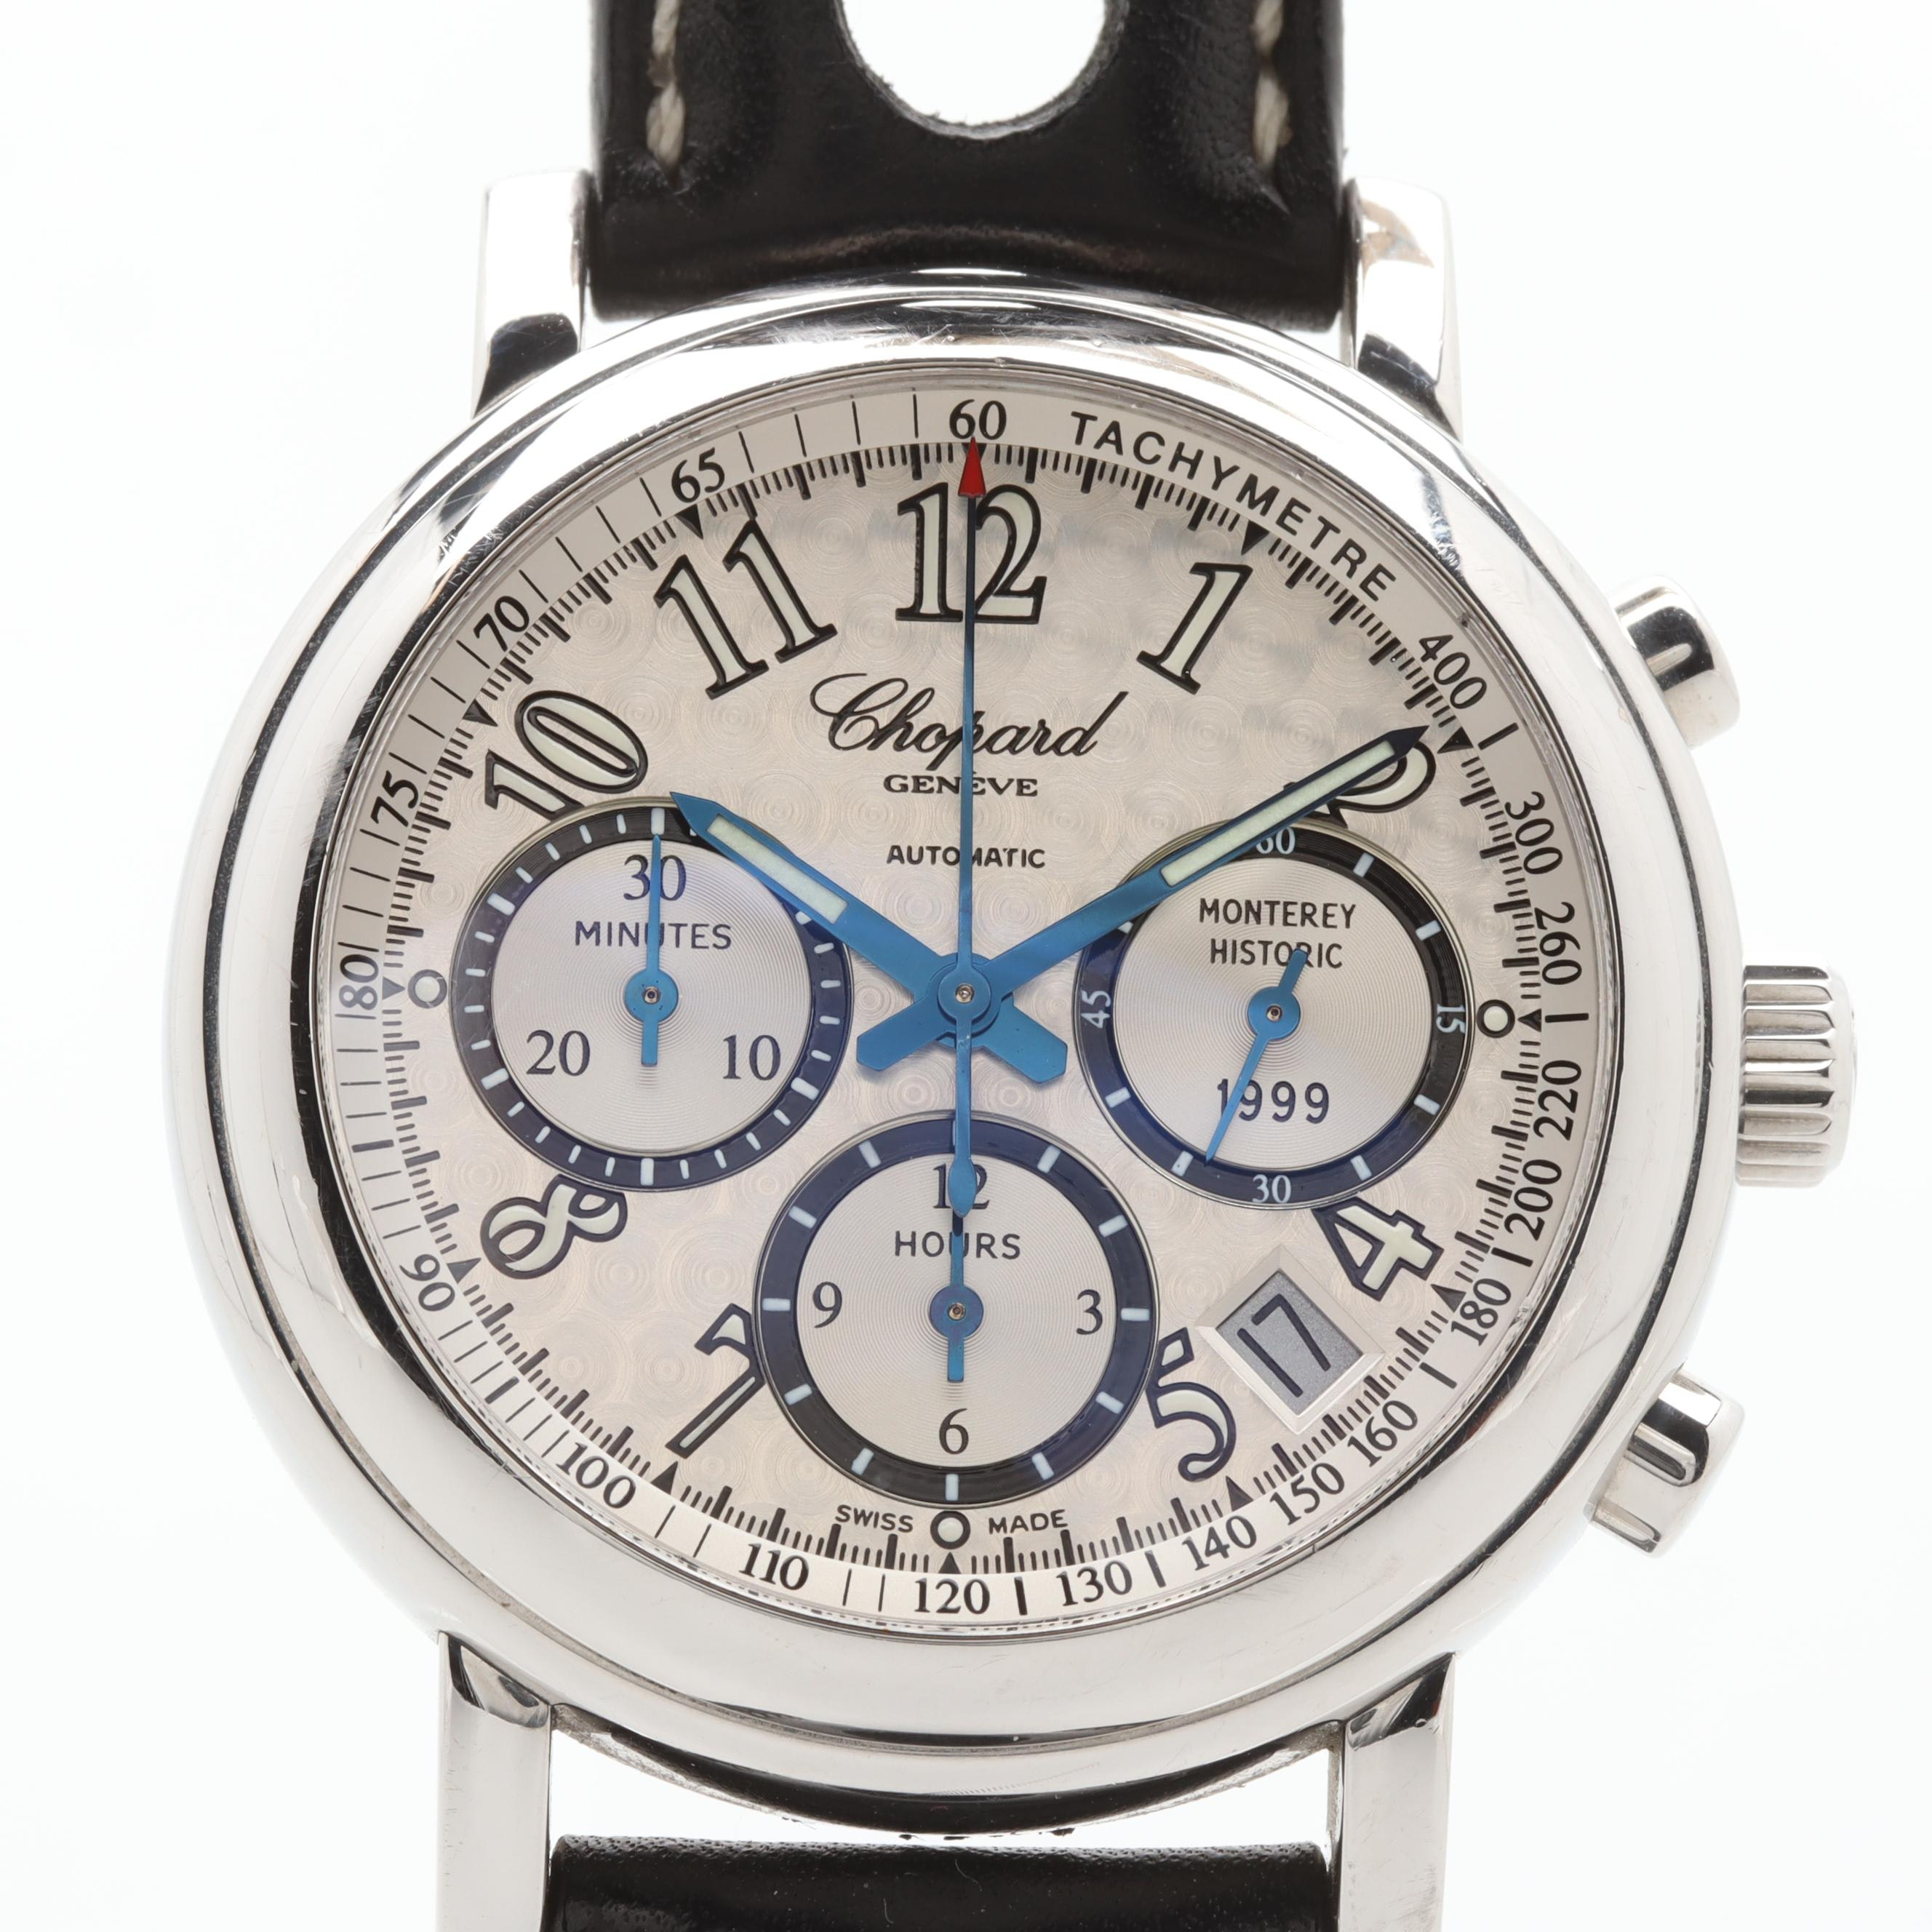 Chopard Mille Miglia Chronograph Monterey Cup Automatic Wristwatch